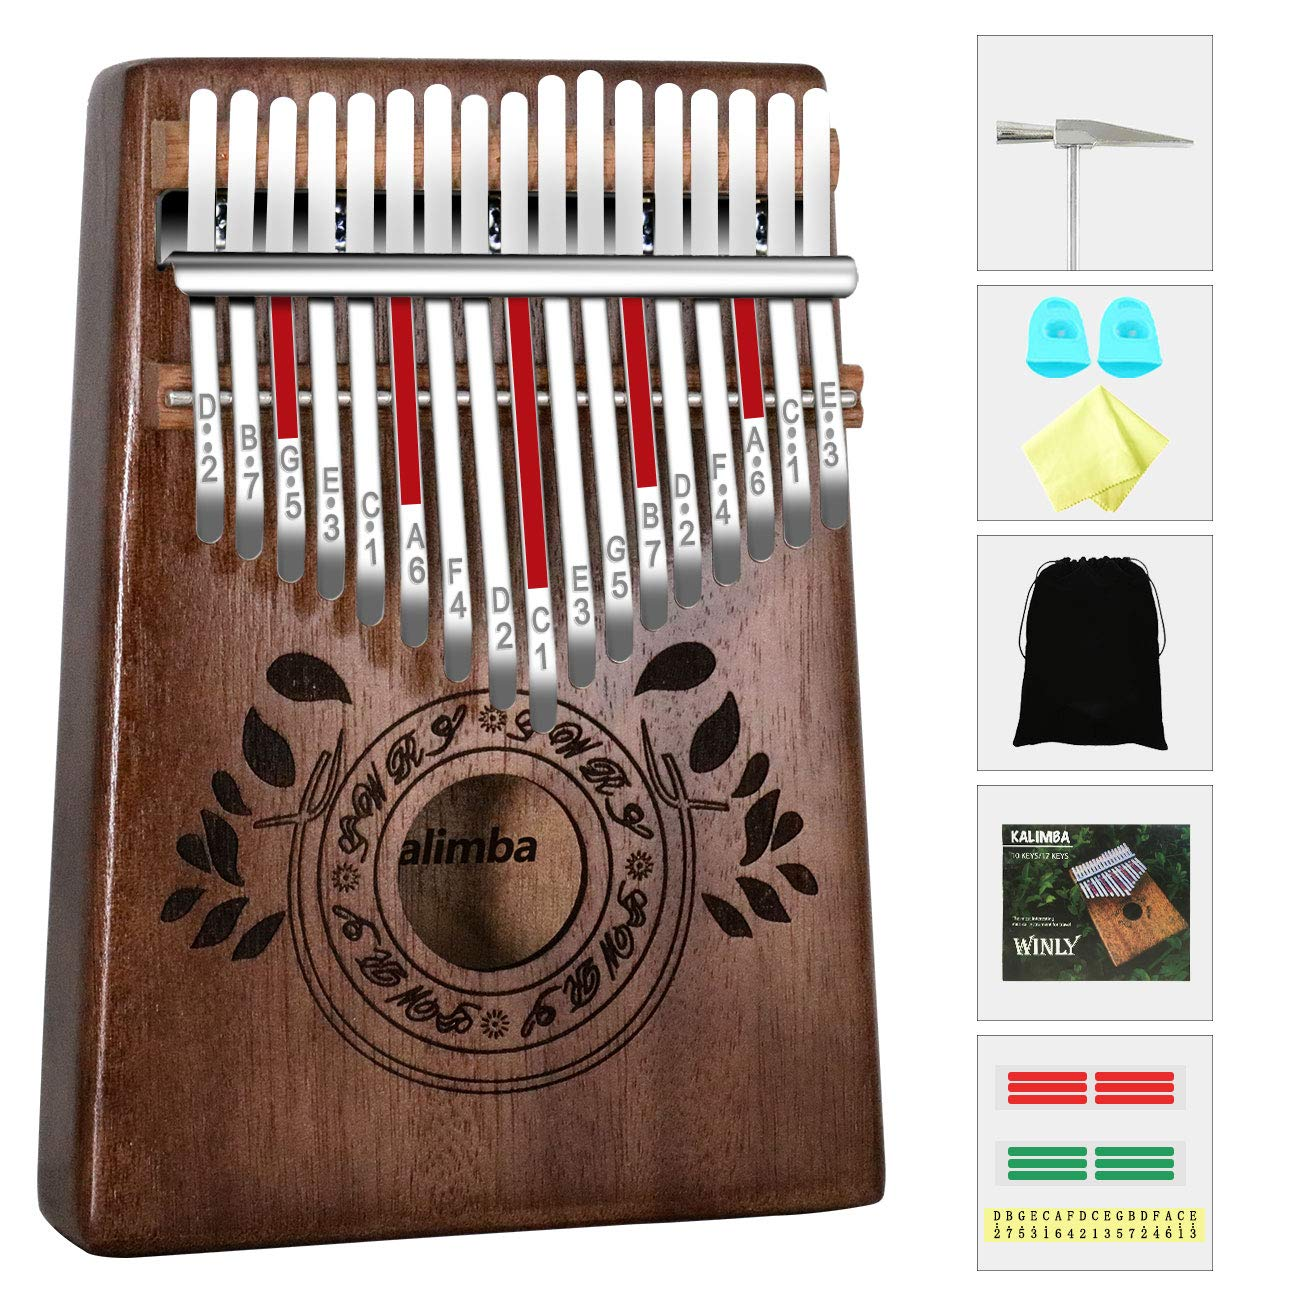 UNOKKI Kalimba 17 Keys Thumb Piano with Study Instruction and Tune Hammer, Portable Solid African Wood Finger Piano, Gift for Kids Adult Beginners (Chocolate Brown). by UNOKKI (Image #1)